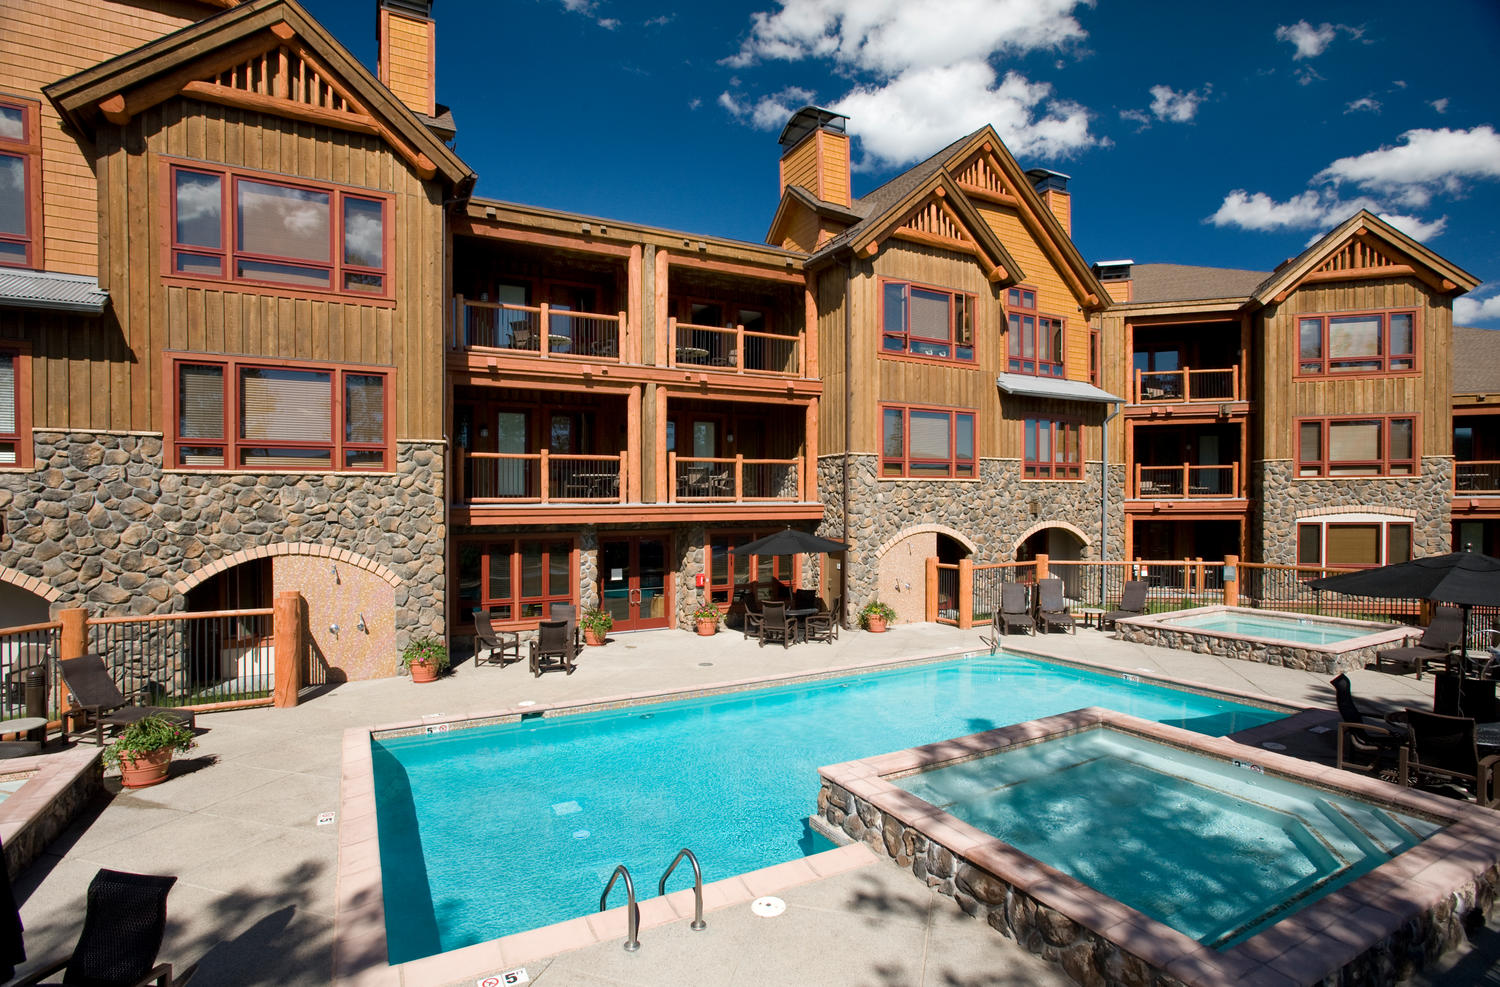 Condominium for Sale at BlueSky Breckenridge 42 Snowflake Drive Breckenridge, Colorado, 80424 United States